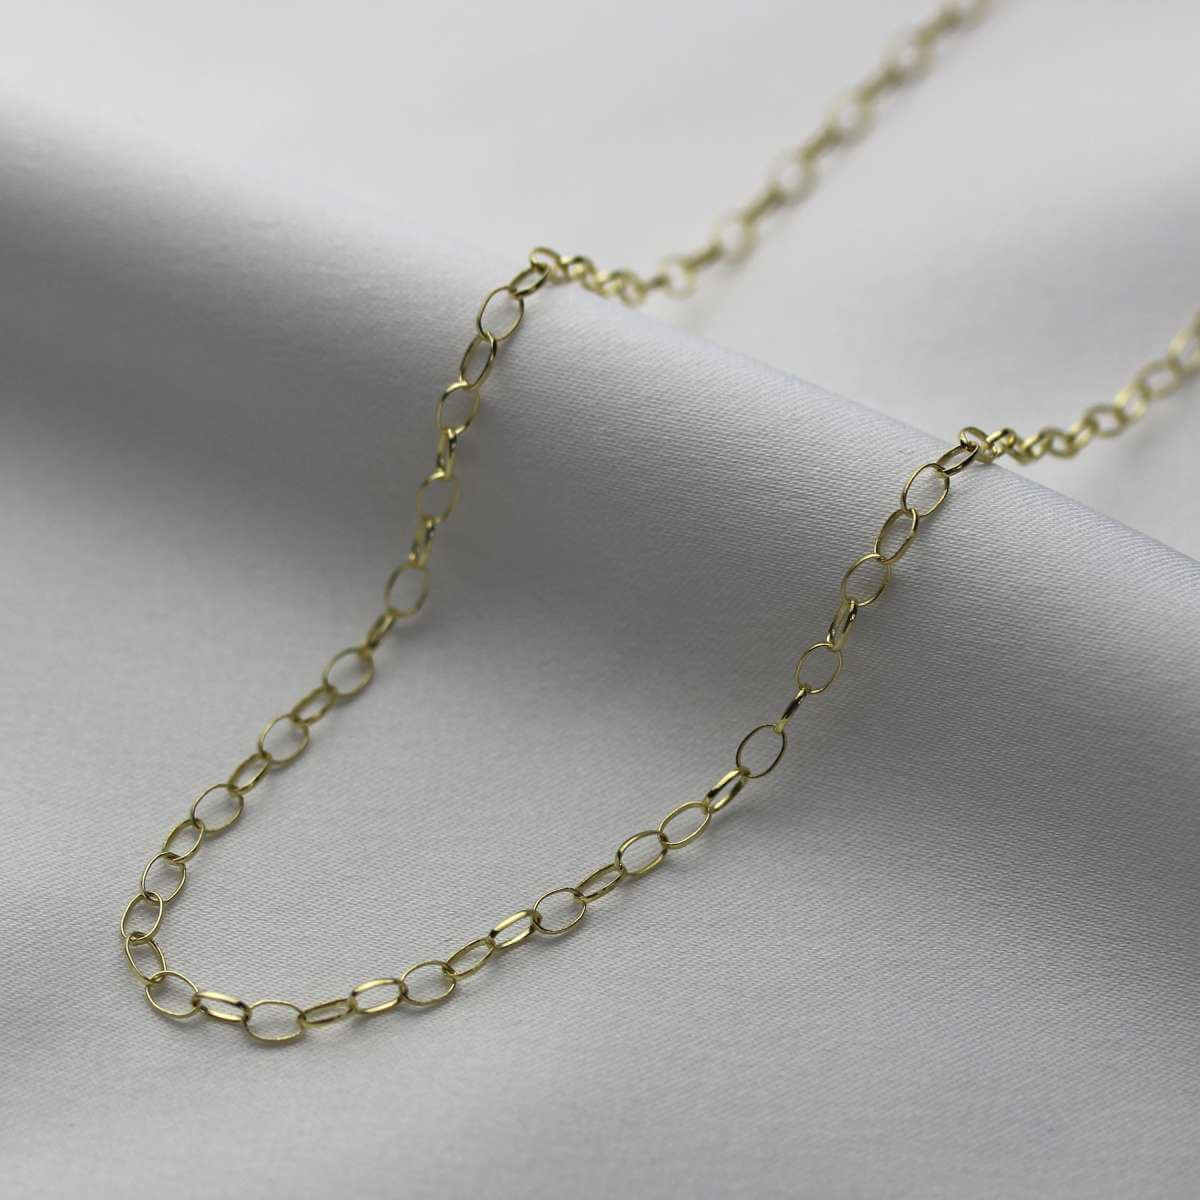 9ct Gold 2.65mm Oval Belcher Chain Necklace 18 - 22 inches